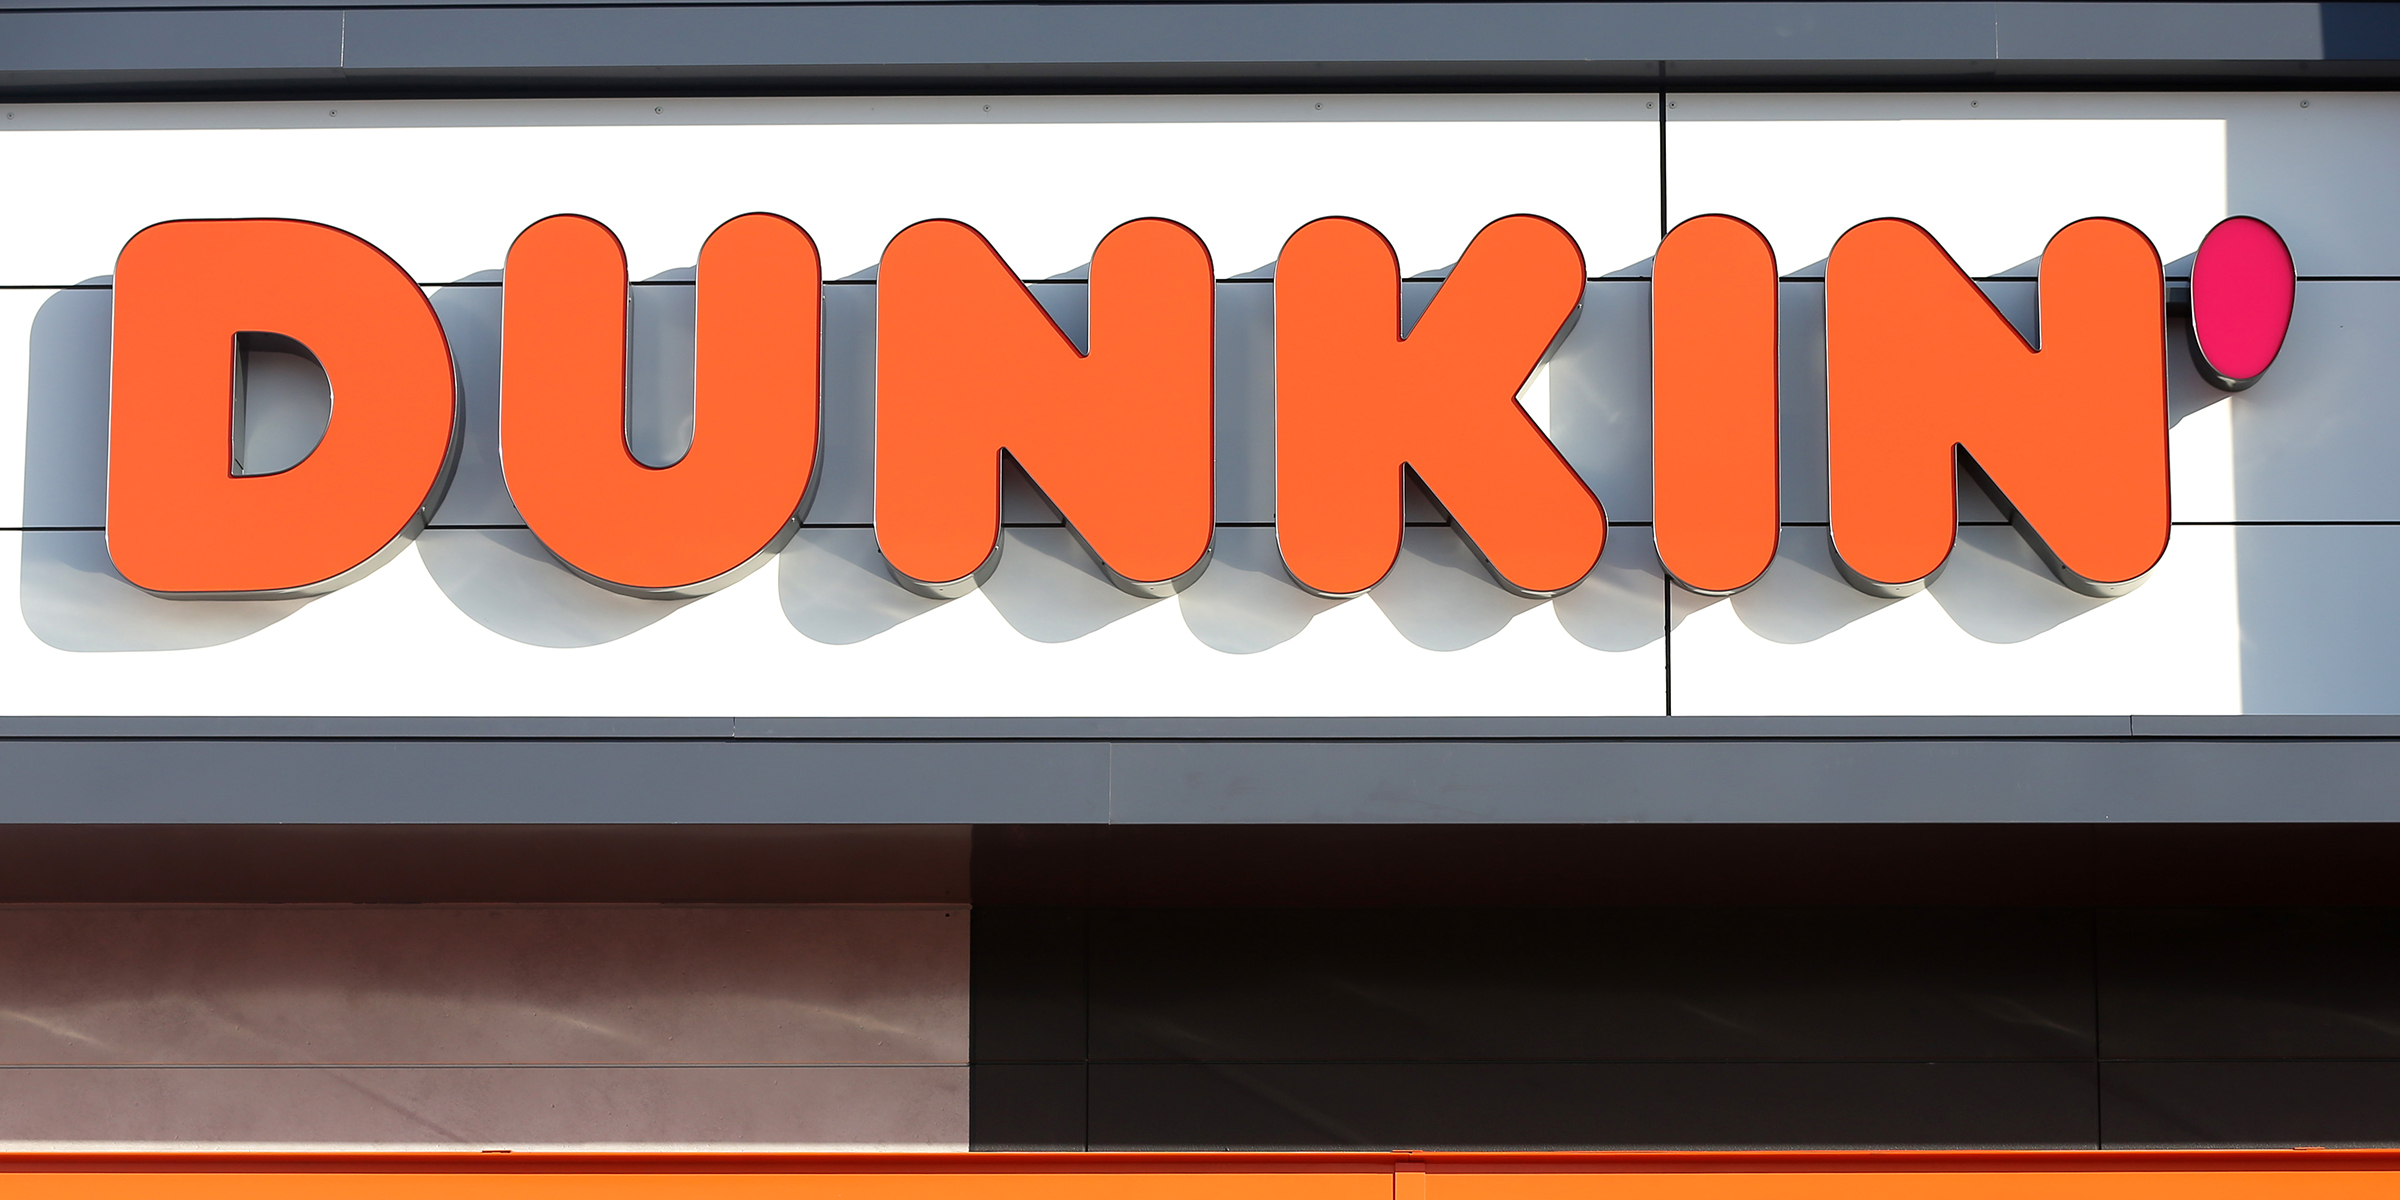 Dunkin' will permanently close 450 locations by the end of 2020